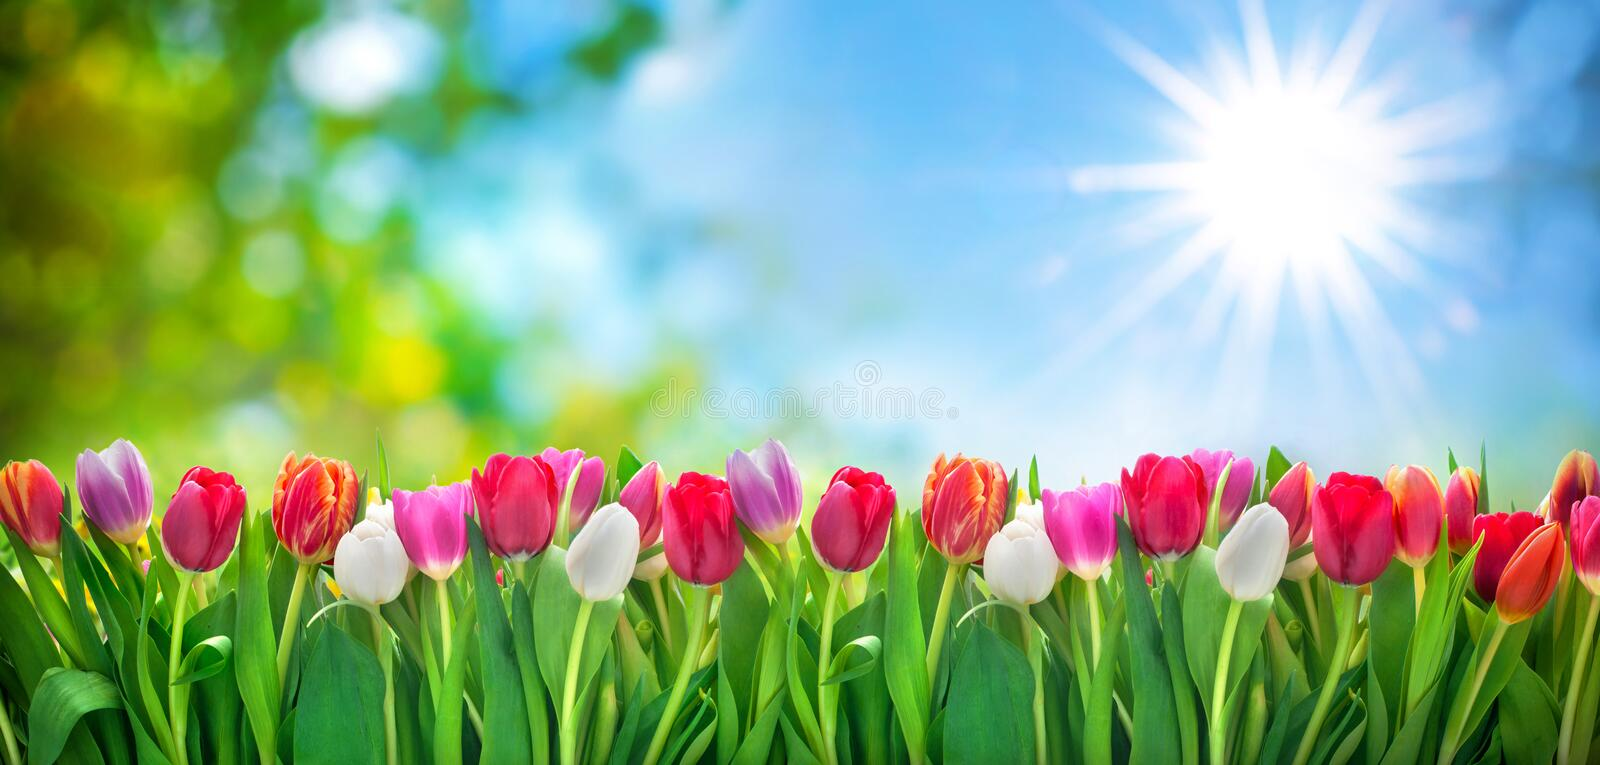 Fleurs de tulipes de ressort photo stock